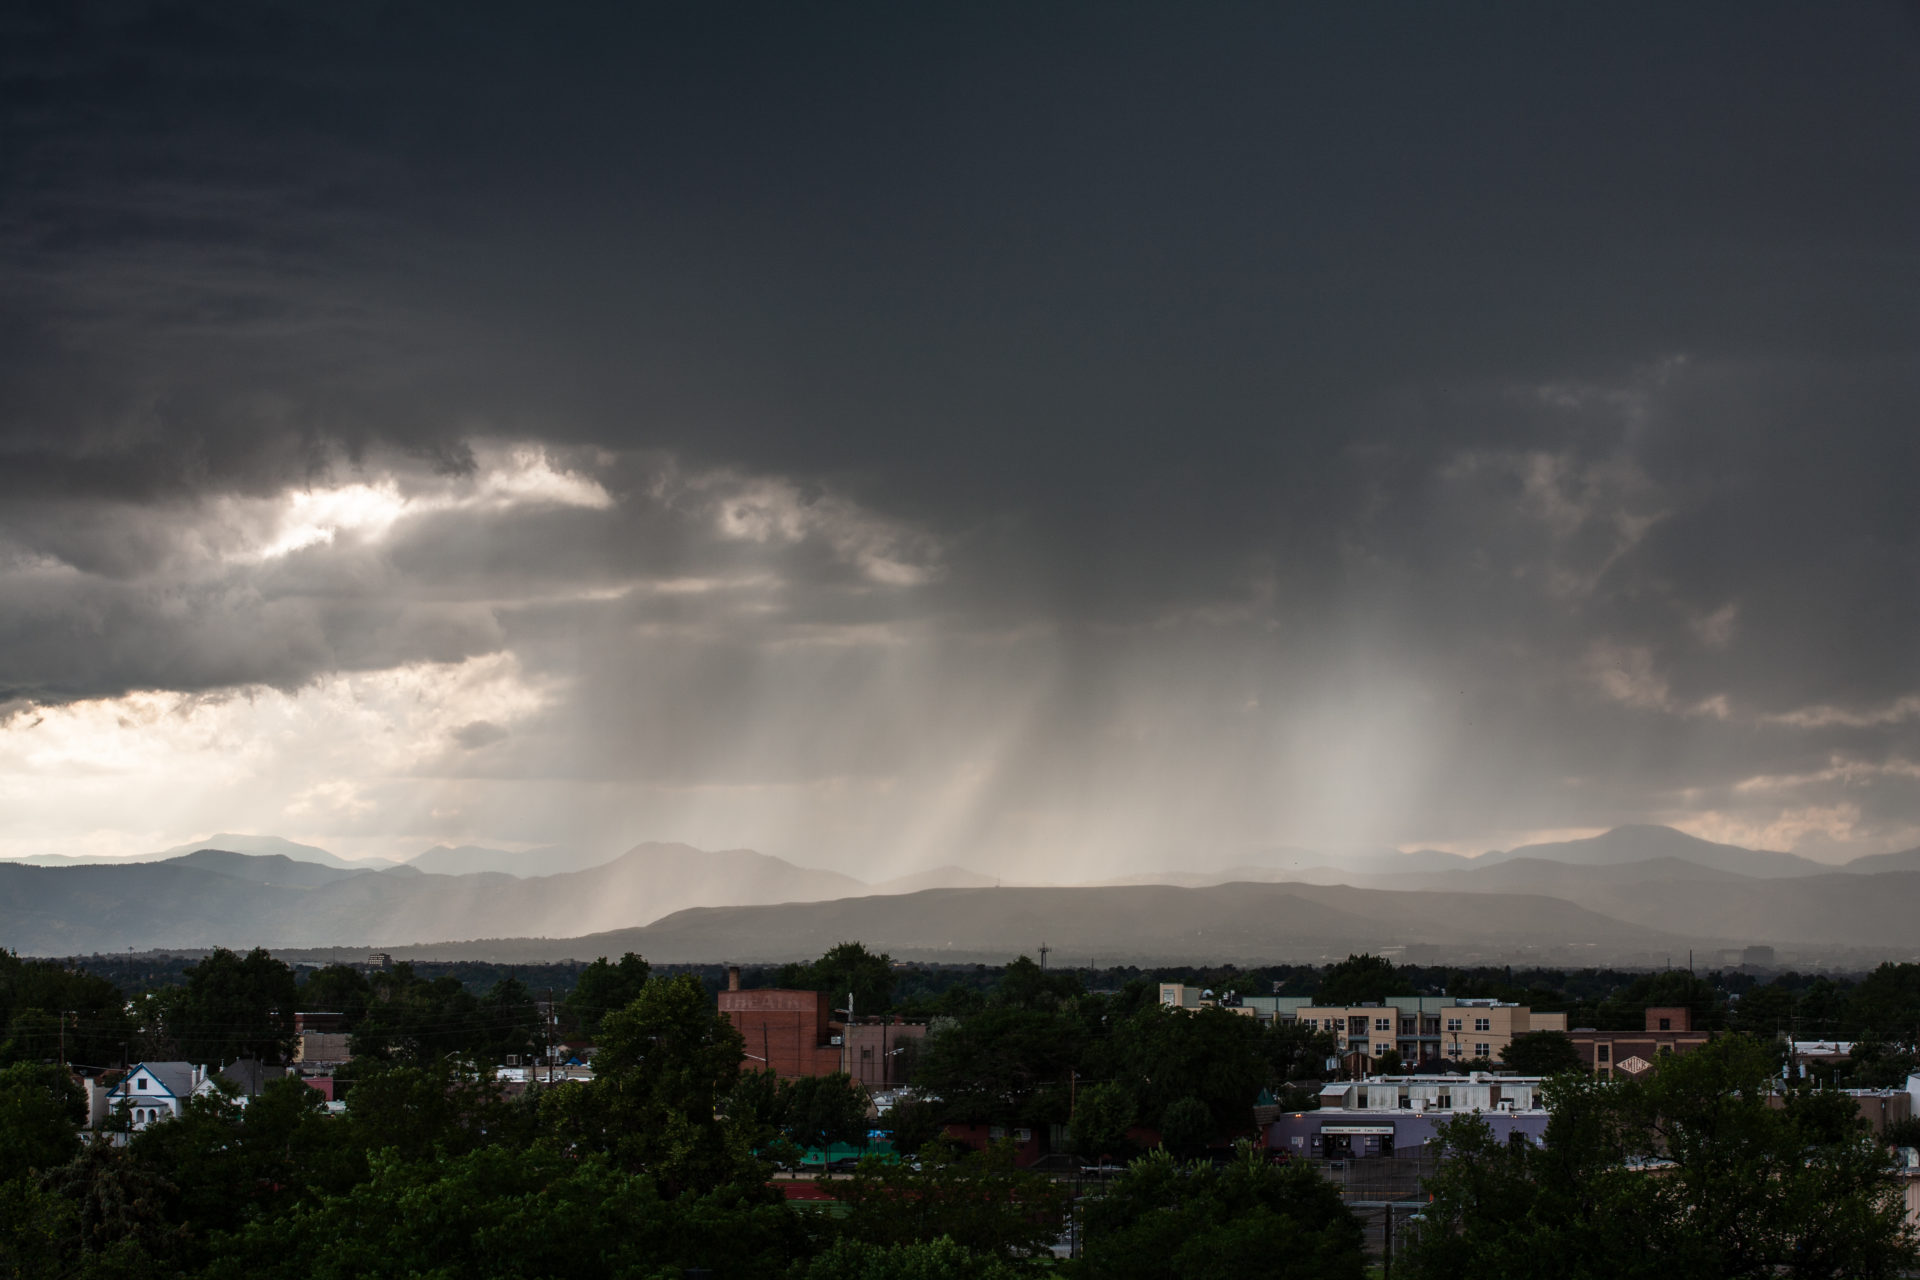 Mount Evans obscured by a storm - July 13, 2011